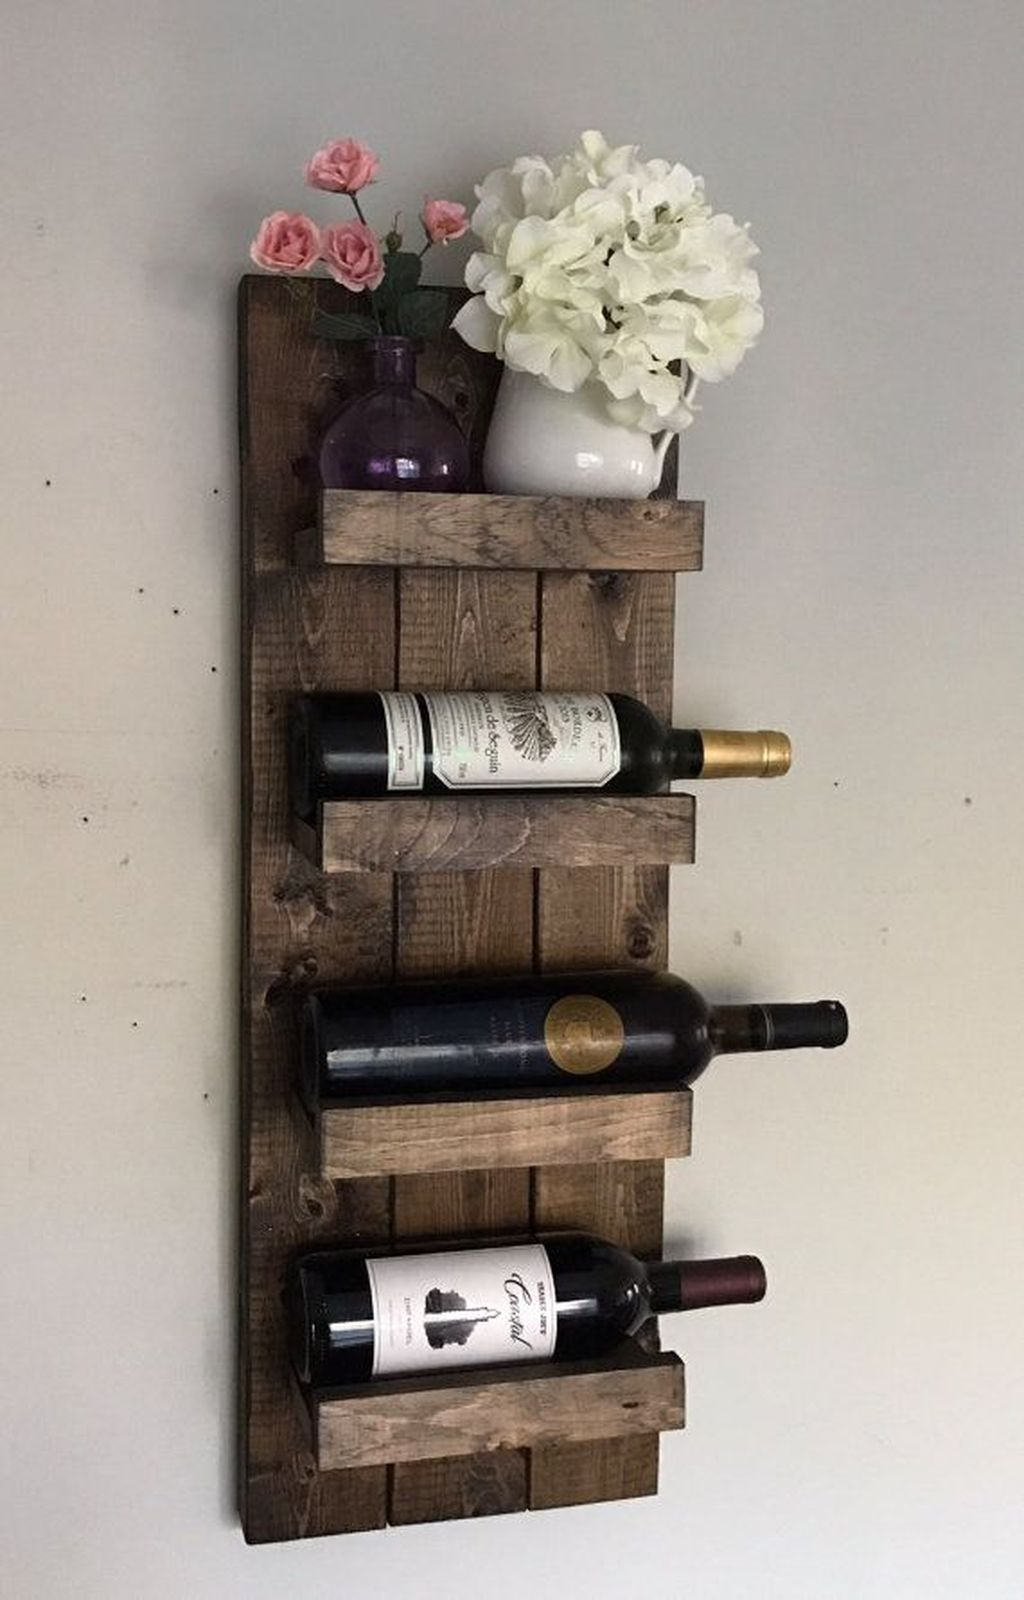 20 Stylish Rustic Wooden Hanging Wine Rack Design Ideas Trendhmdcr Wine Rack Wall Wine Bottle Display Wooden Wine Rack